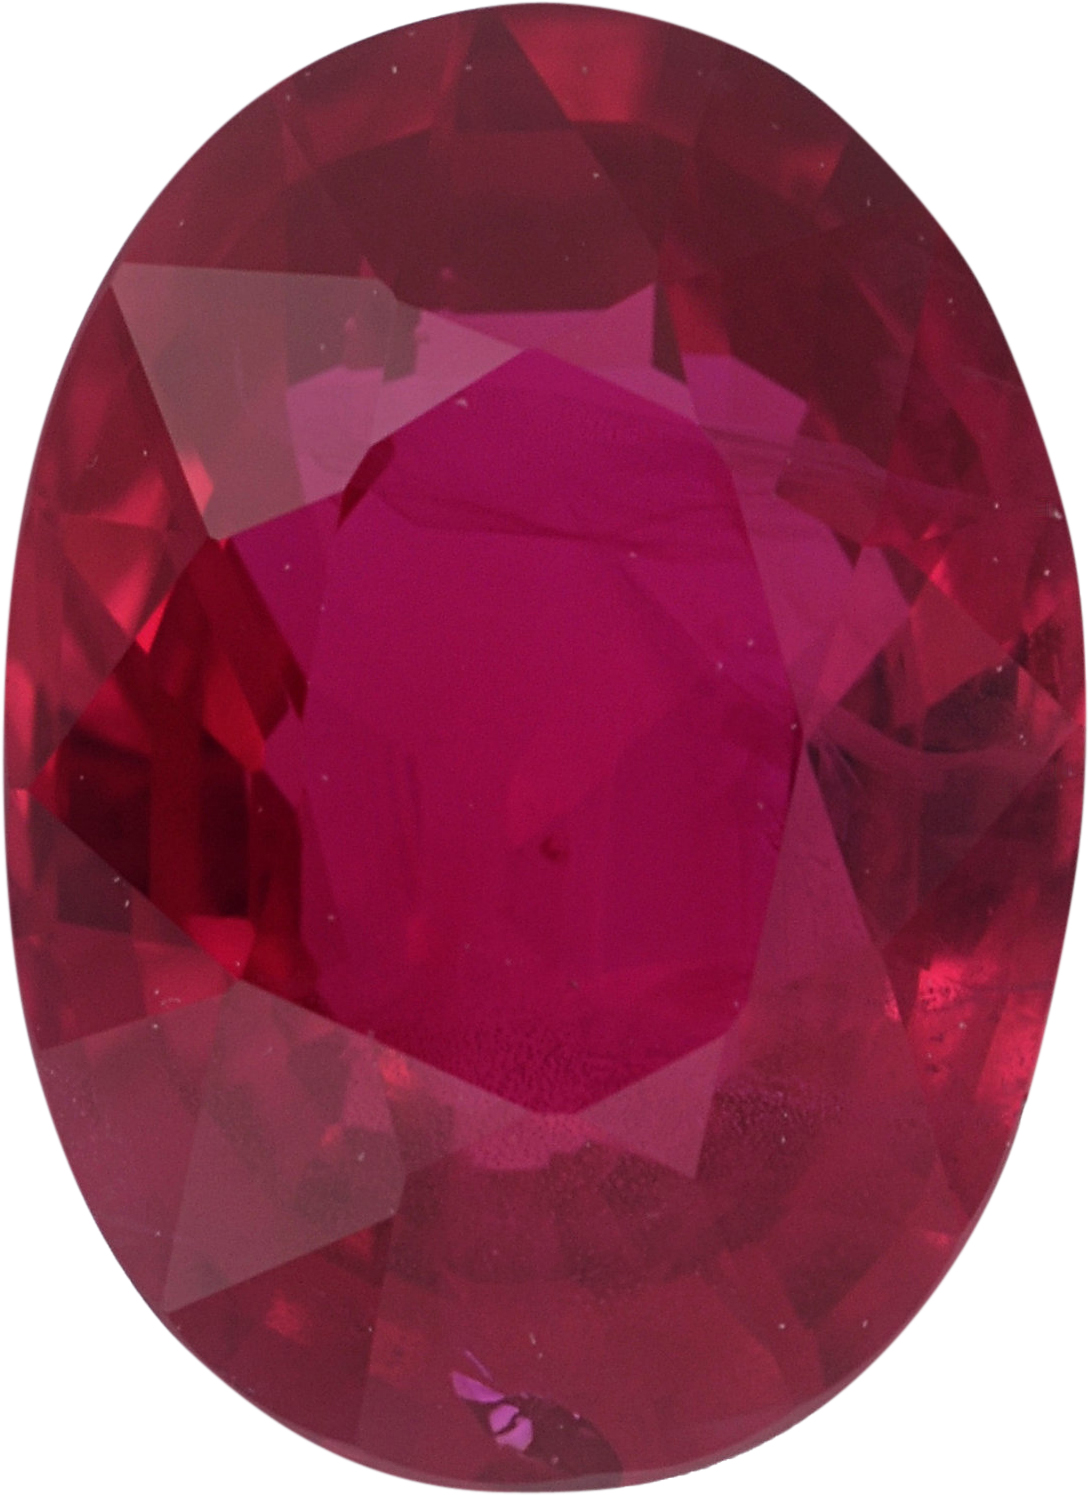 Bright & Lively Oval Cut Loose Ruby Gem, Red Color, 7.47 x 5.45 mm, 1.25 carats